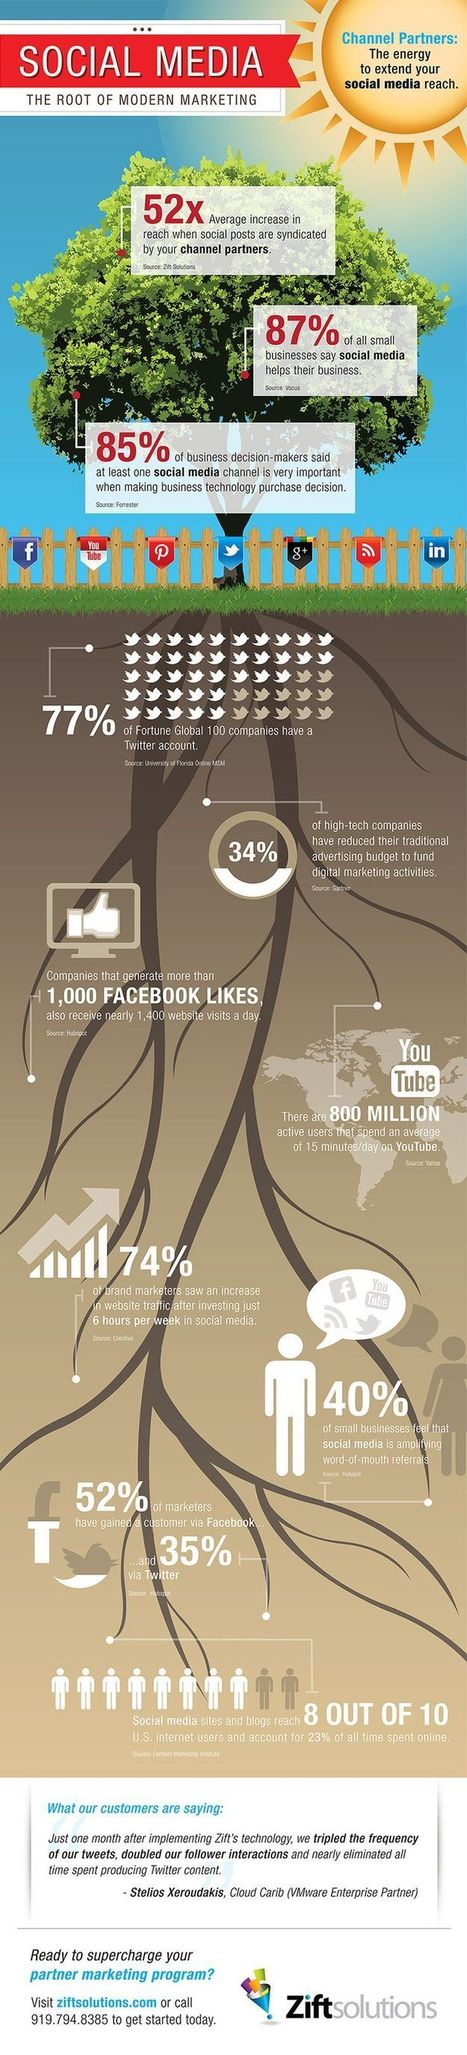 Social Media - The root of modern marketing [infographic] | Educomunicación | Scoop.it